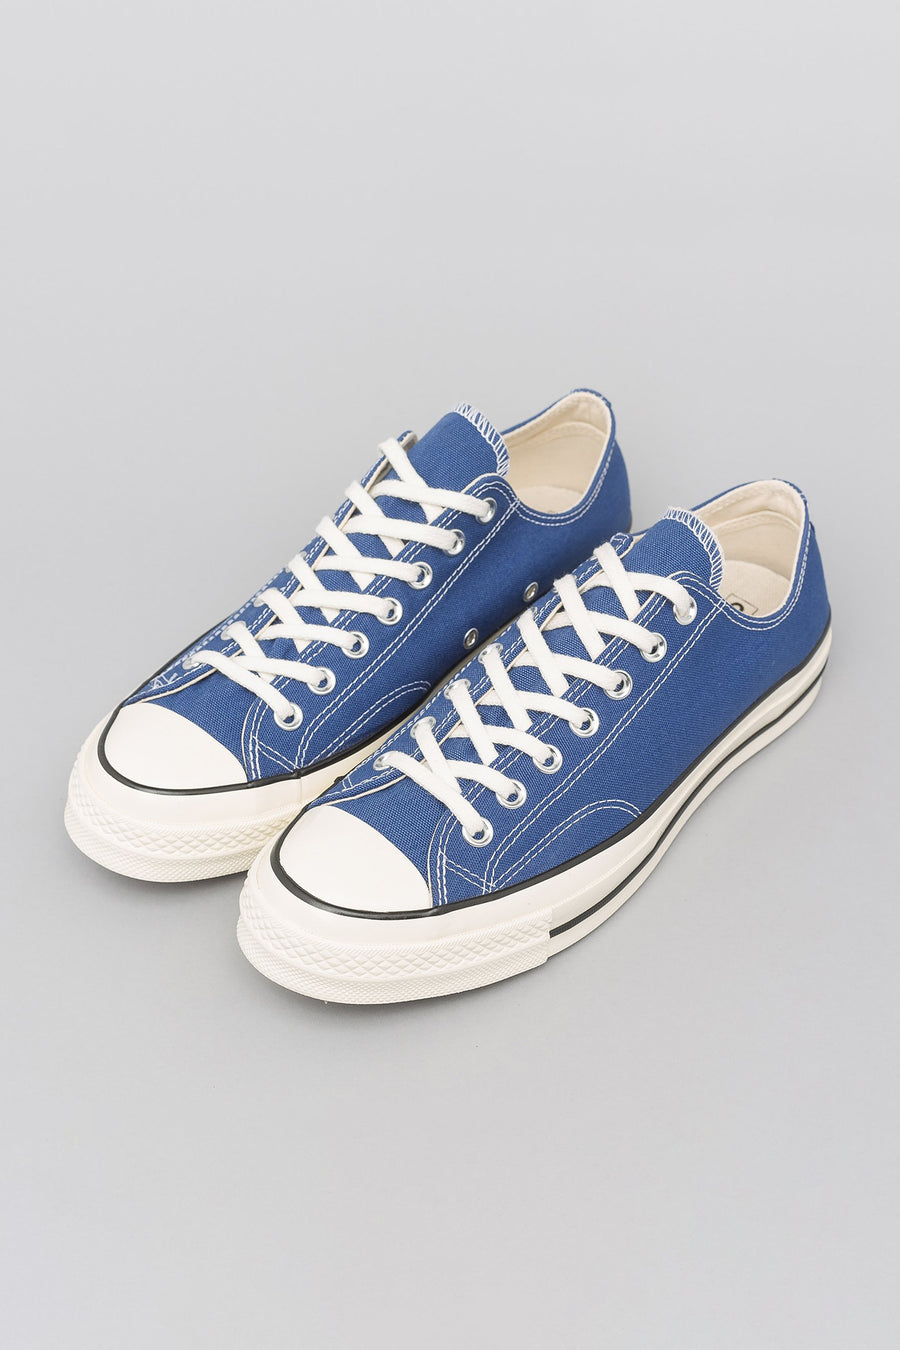 Converse Chuck 70 Ox in True Navy - Notre